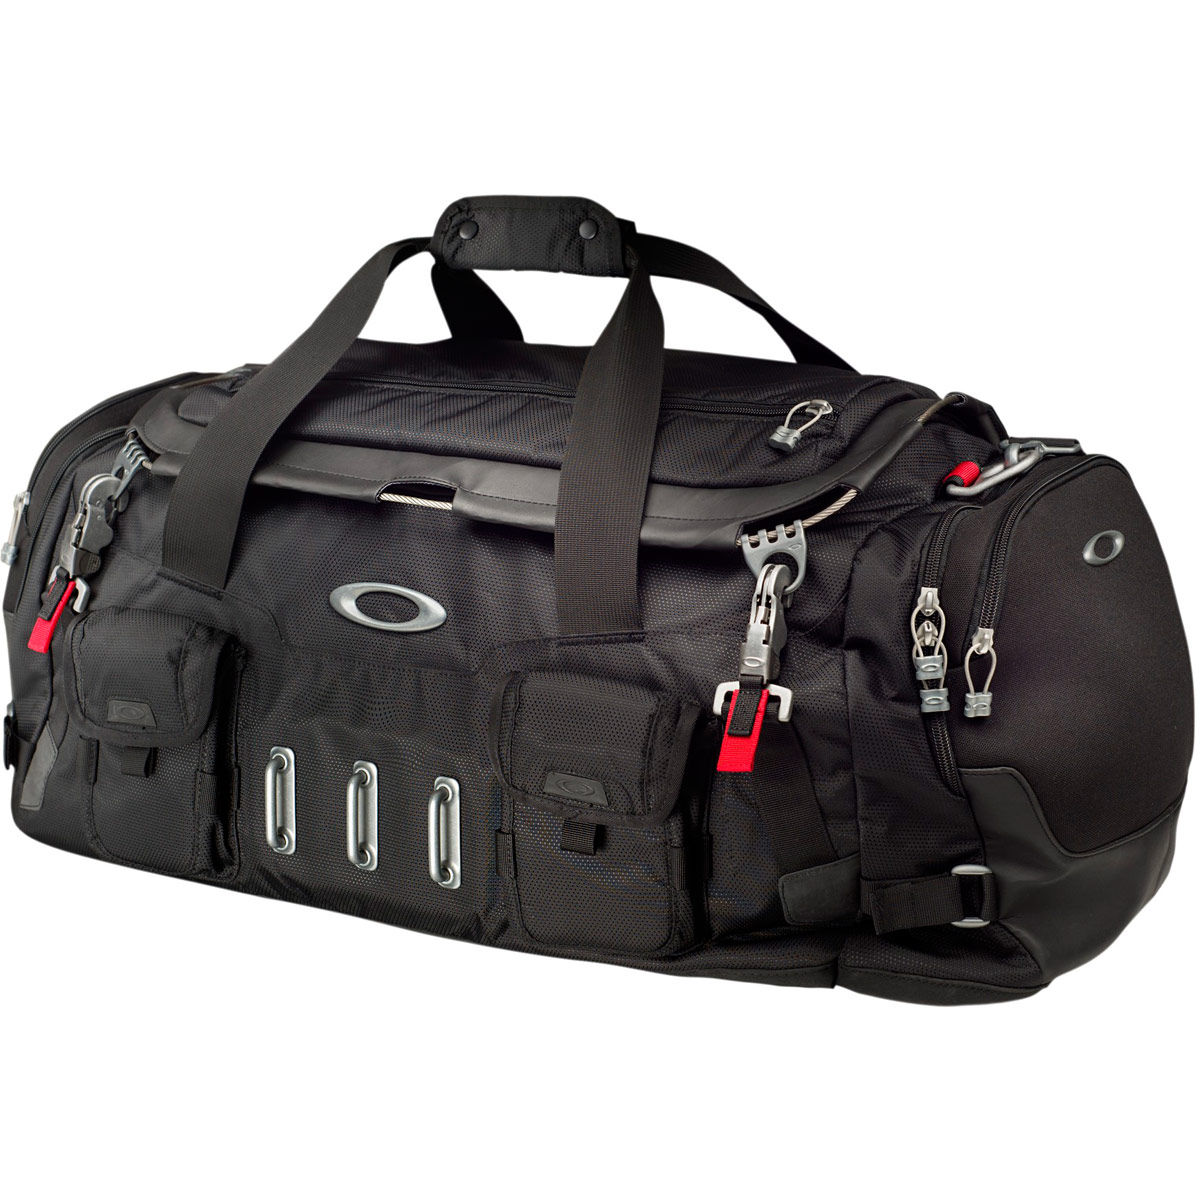 Best Place For Golf Travel Bag